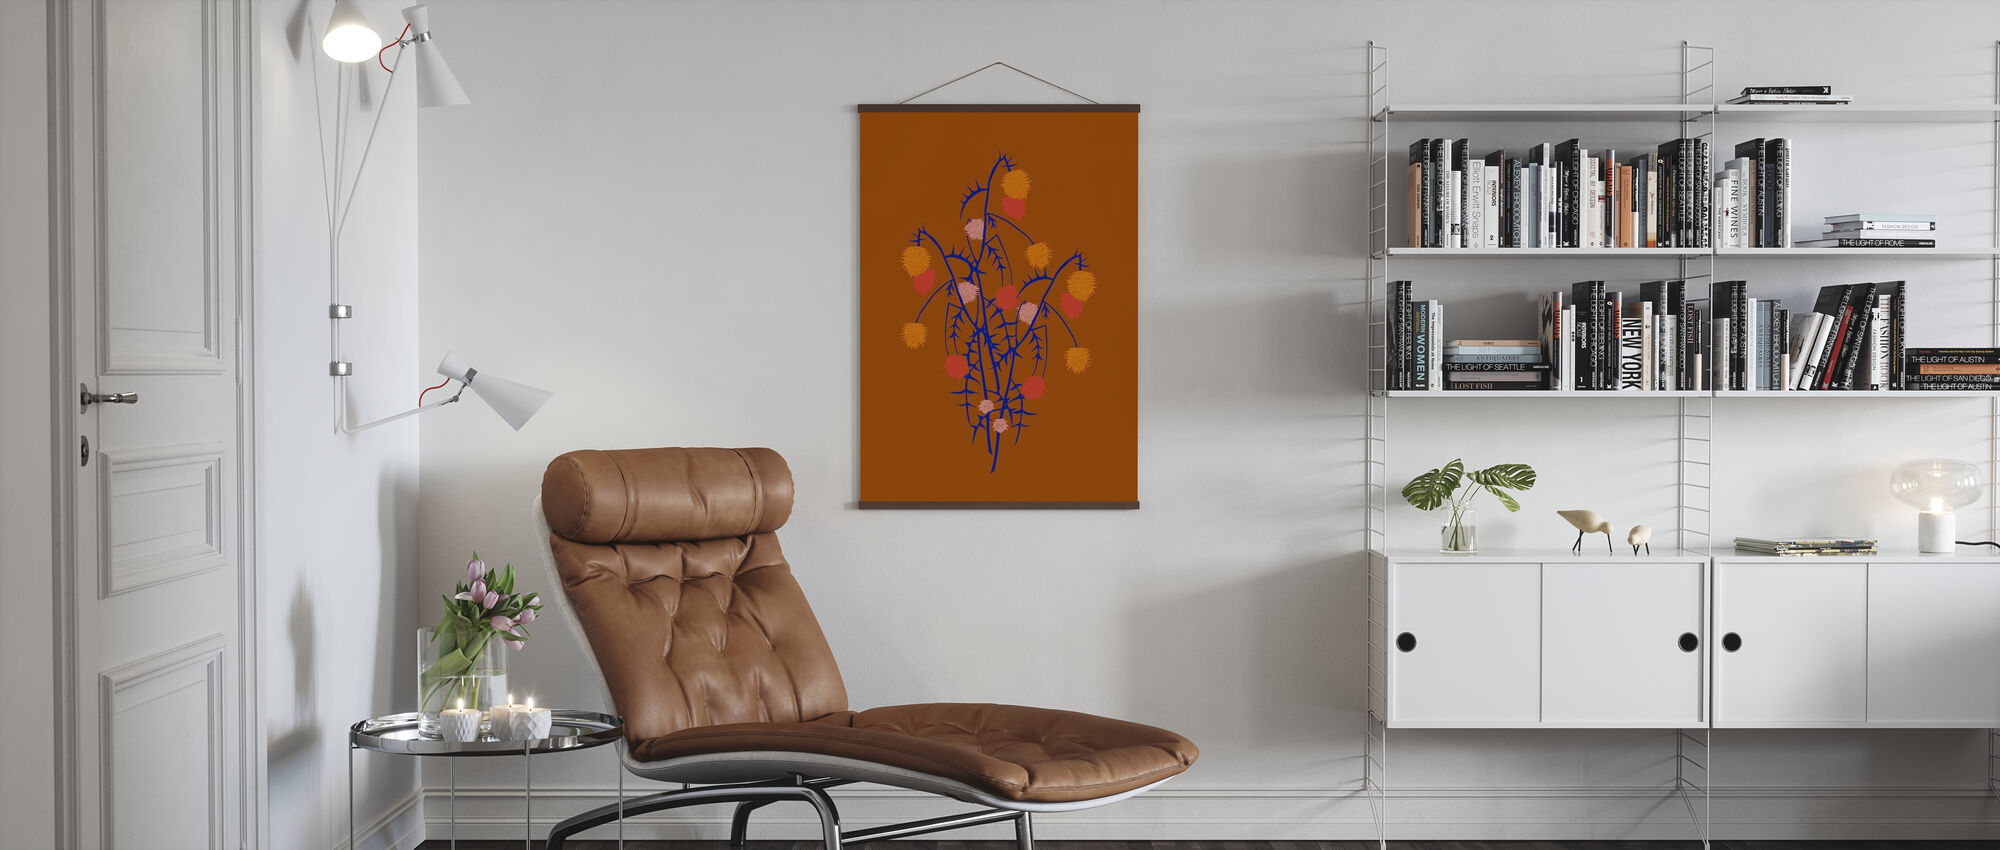 Thistle Boquet - Poster - Living Room